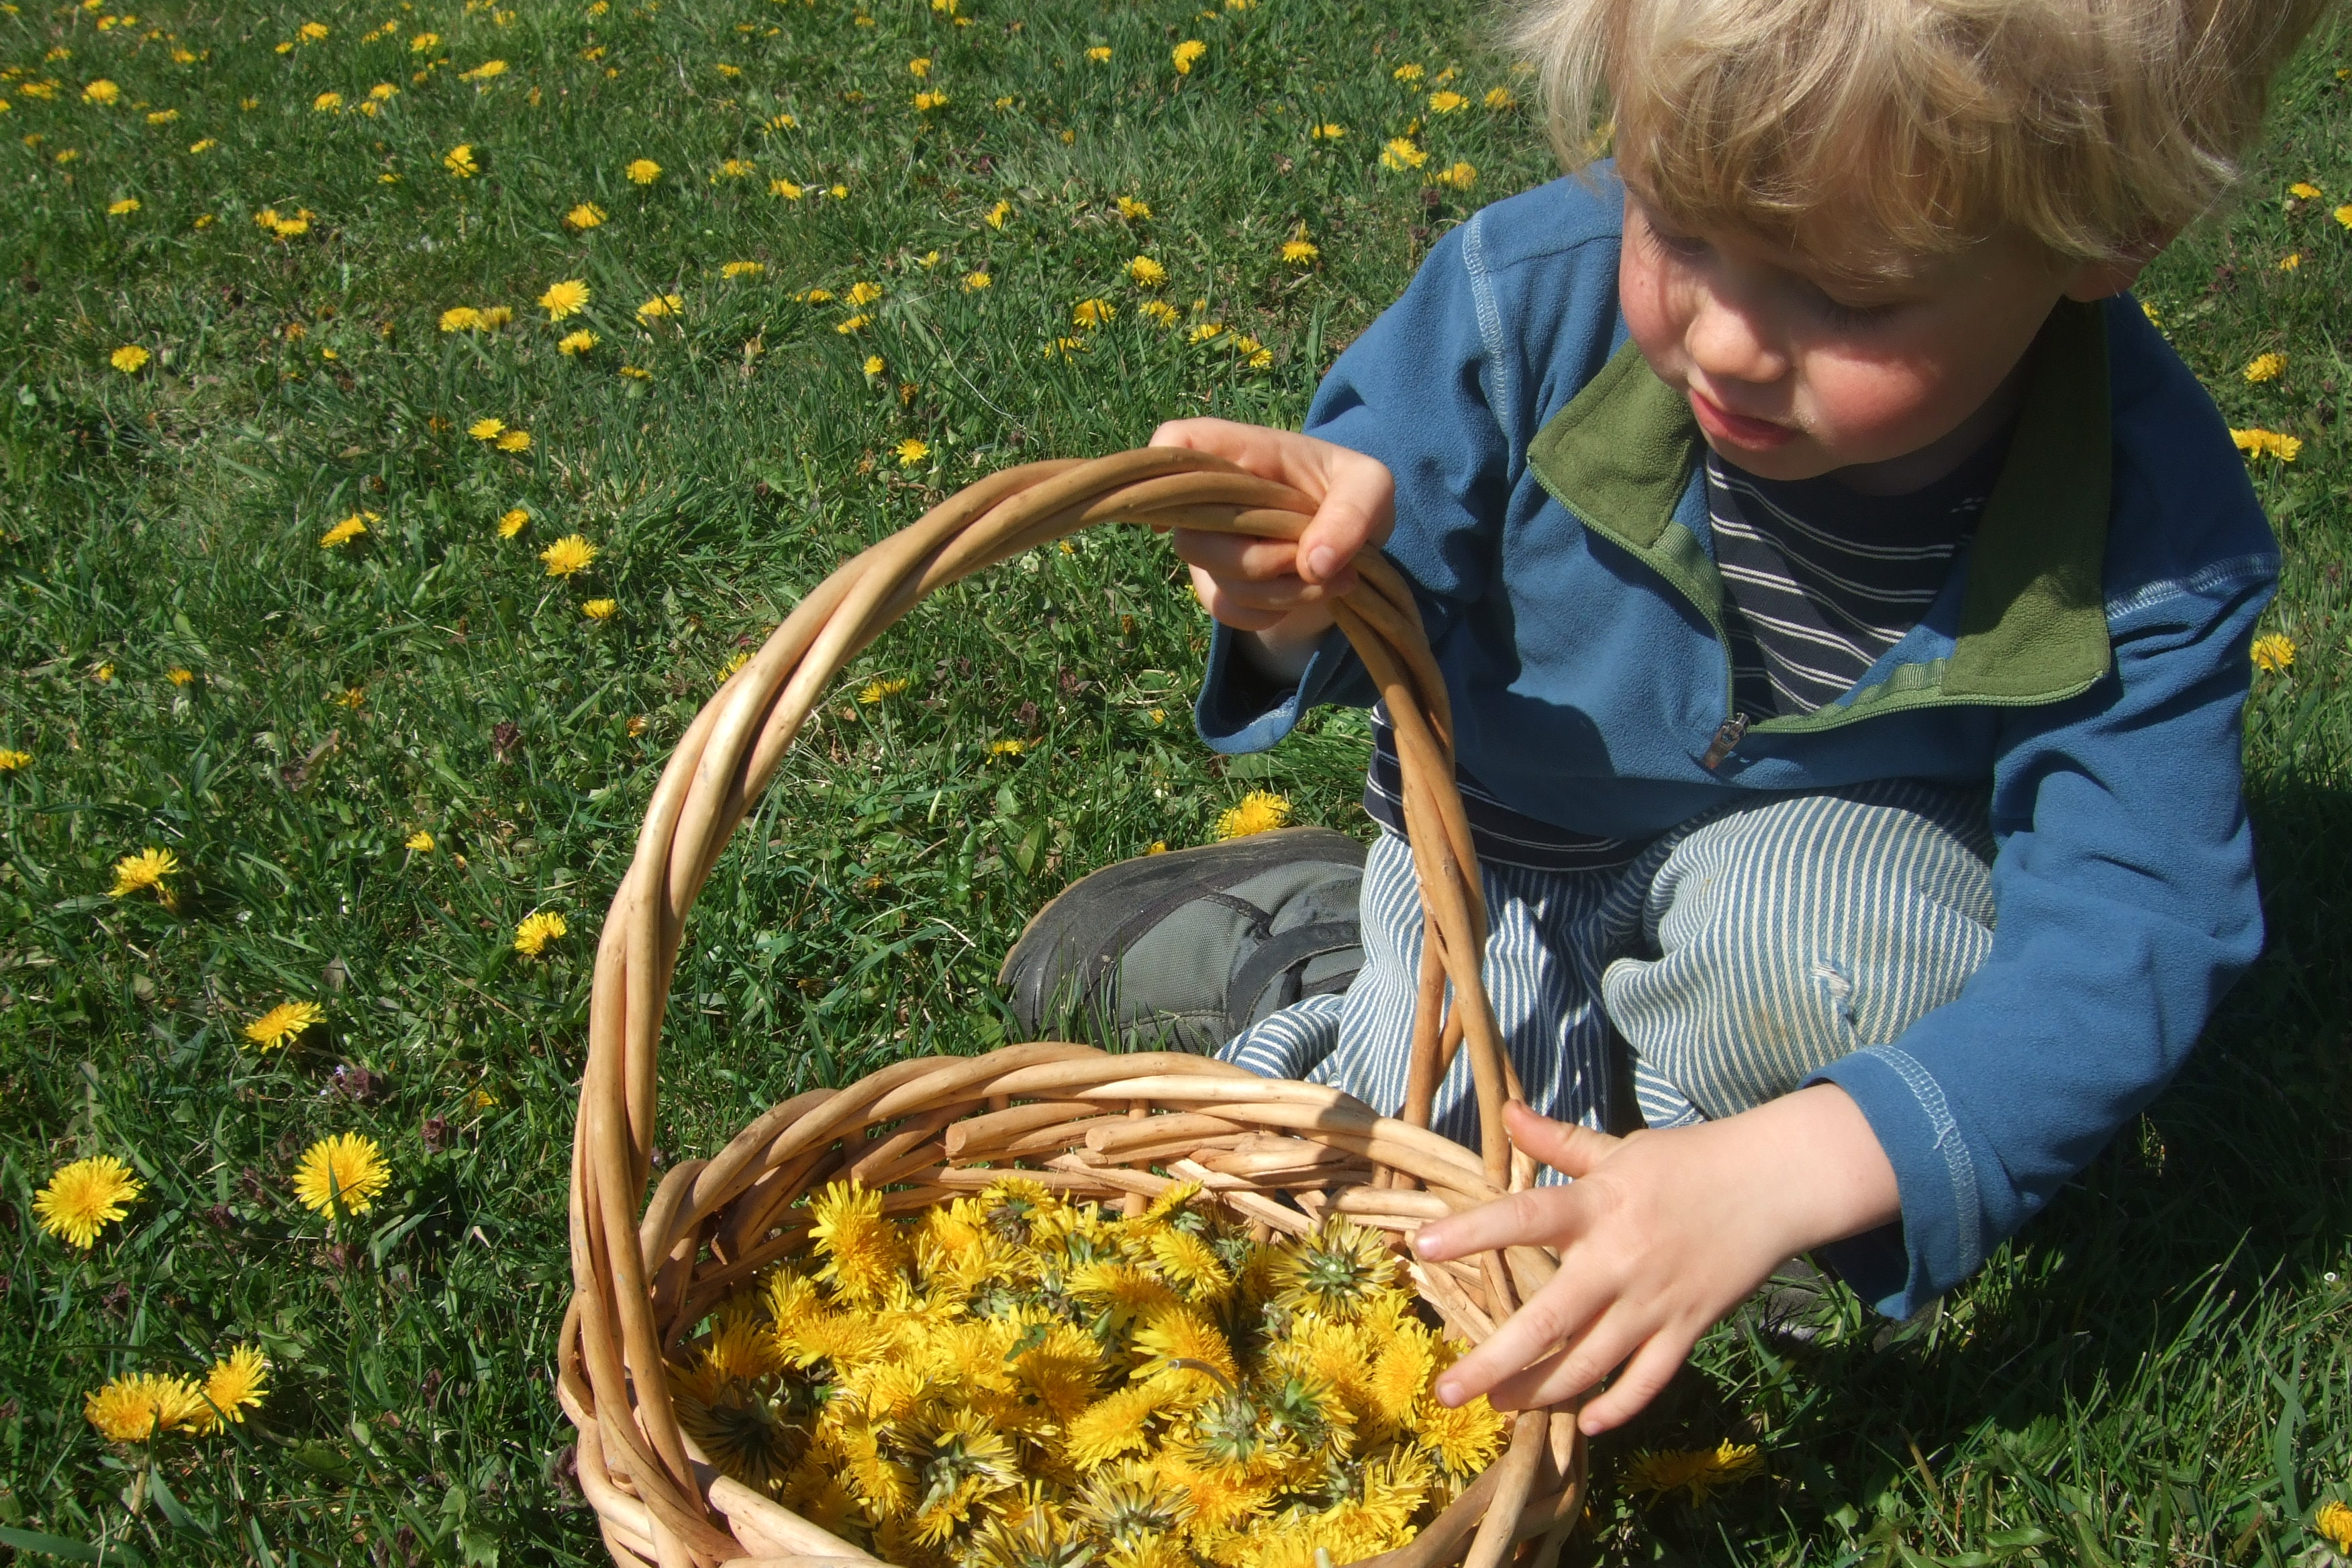 Ian picking dandelions for dandelion jelly